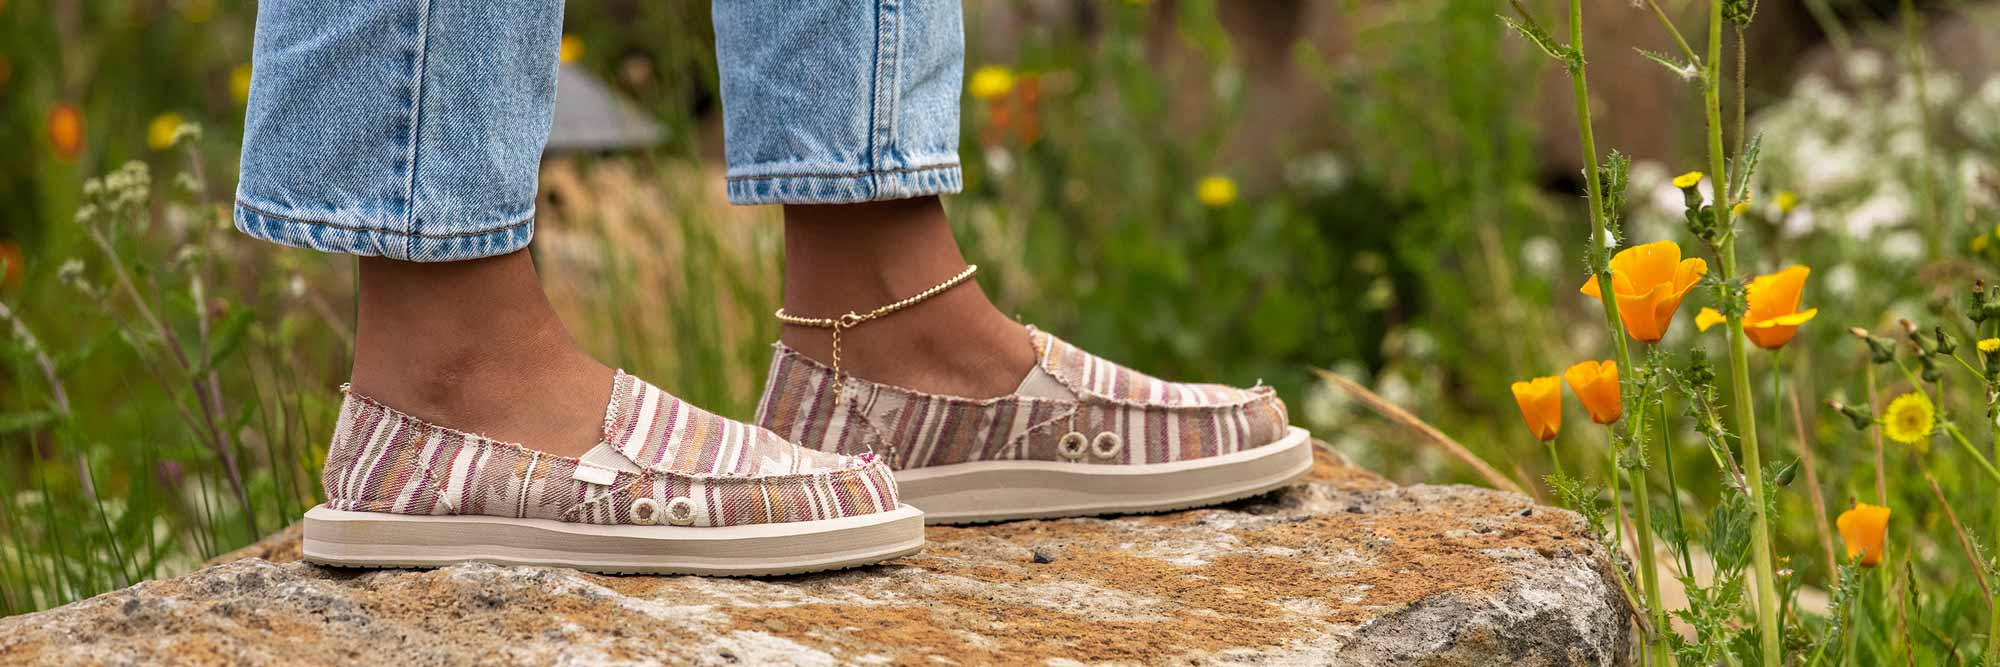 Close up of a woman's feet wearing Sanuk Sidewalk Surfers, with rock and grass in the background.